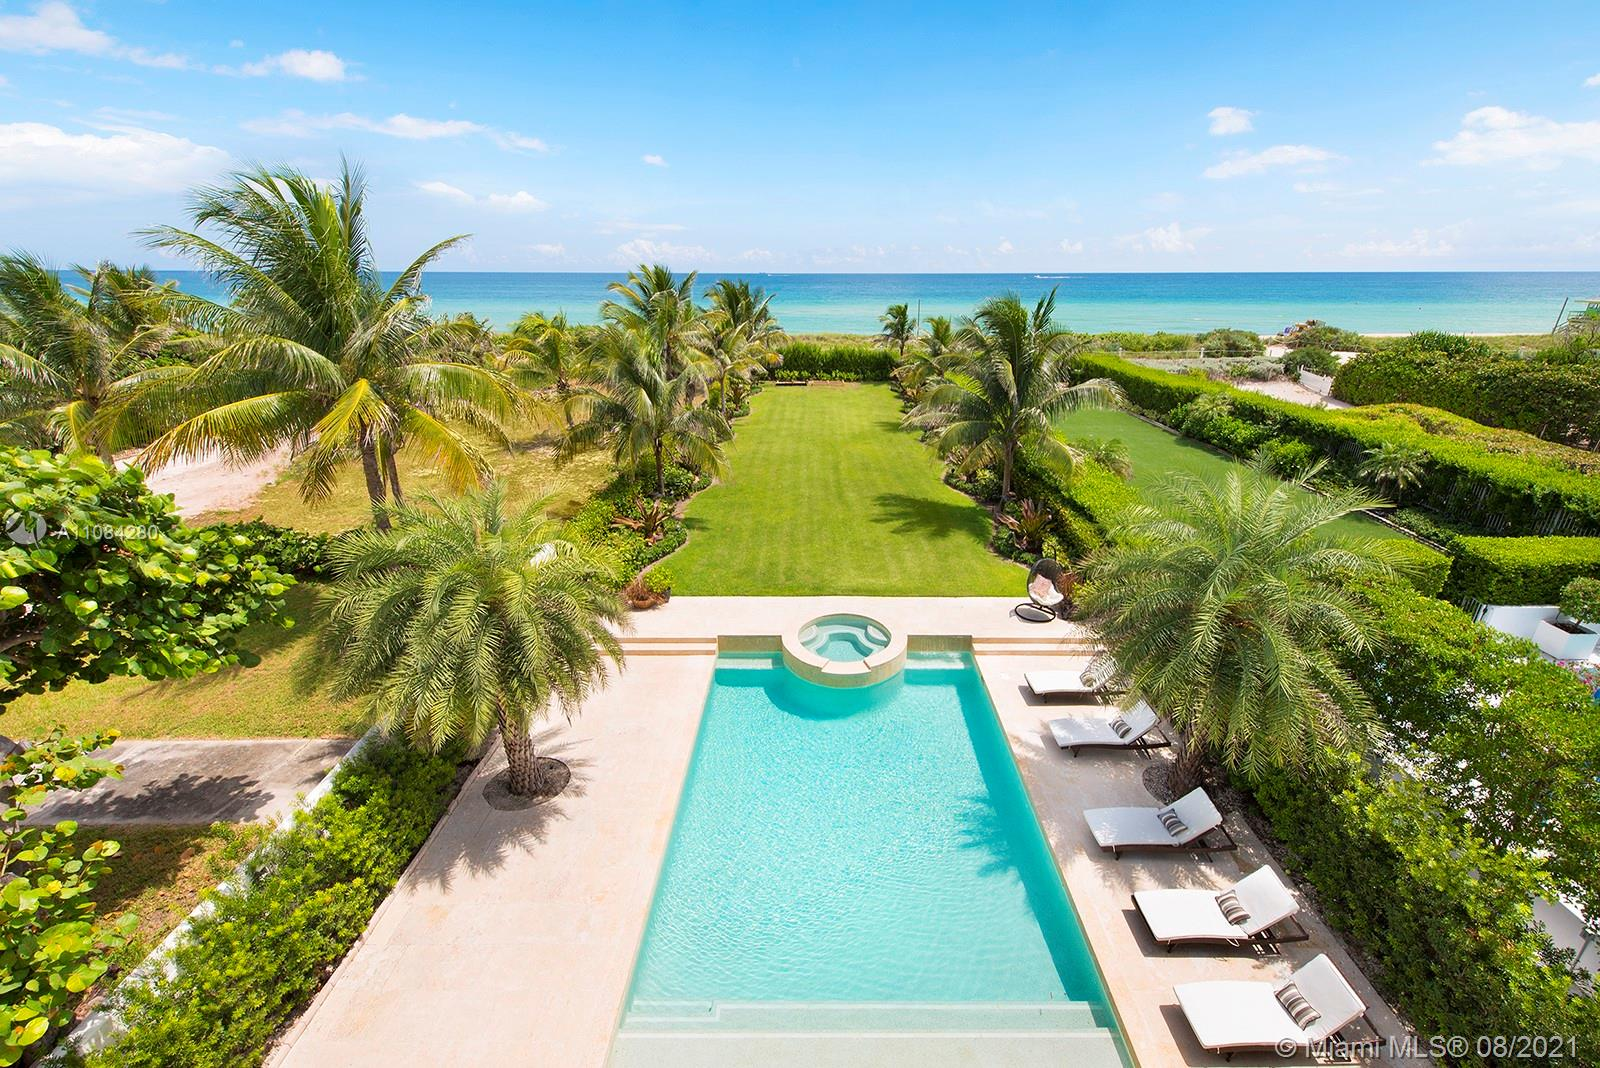 Start the day w/ a sunrise walk along the beach from private, guard-gated Altos Del Mar villa DIRECLTY ON THE OCEAN at highest flood elevations in Miami Beach. Turnkey opportunity with brand new furnishings & a Raymond Jungles-designed landscaped garden & rooftop terrace. 1st floor cabana kitchen & family room (plus two bedrooms) opens to covered loggia w/ summer kitchen & bar. Enjoy privacy in the infinity pool while guests lounge on grassy areas or walk a few steps to the beach. Enjoy views from 2nd floor master w/ private terrace, his/her master bath toilet rooms/sinks & three additional bedroom suites. Stunning vistas from 3rd floor kitchen, living, dining, & family rooms and seaside dining terrace. Two detached 2nd floor guest suites in 3 car carriage house for 7 parking spaces total.